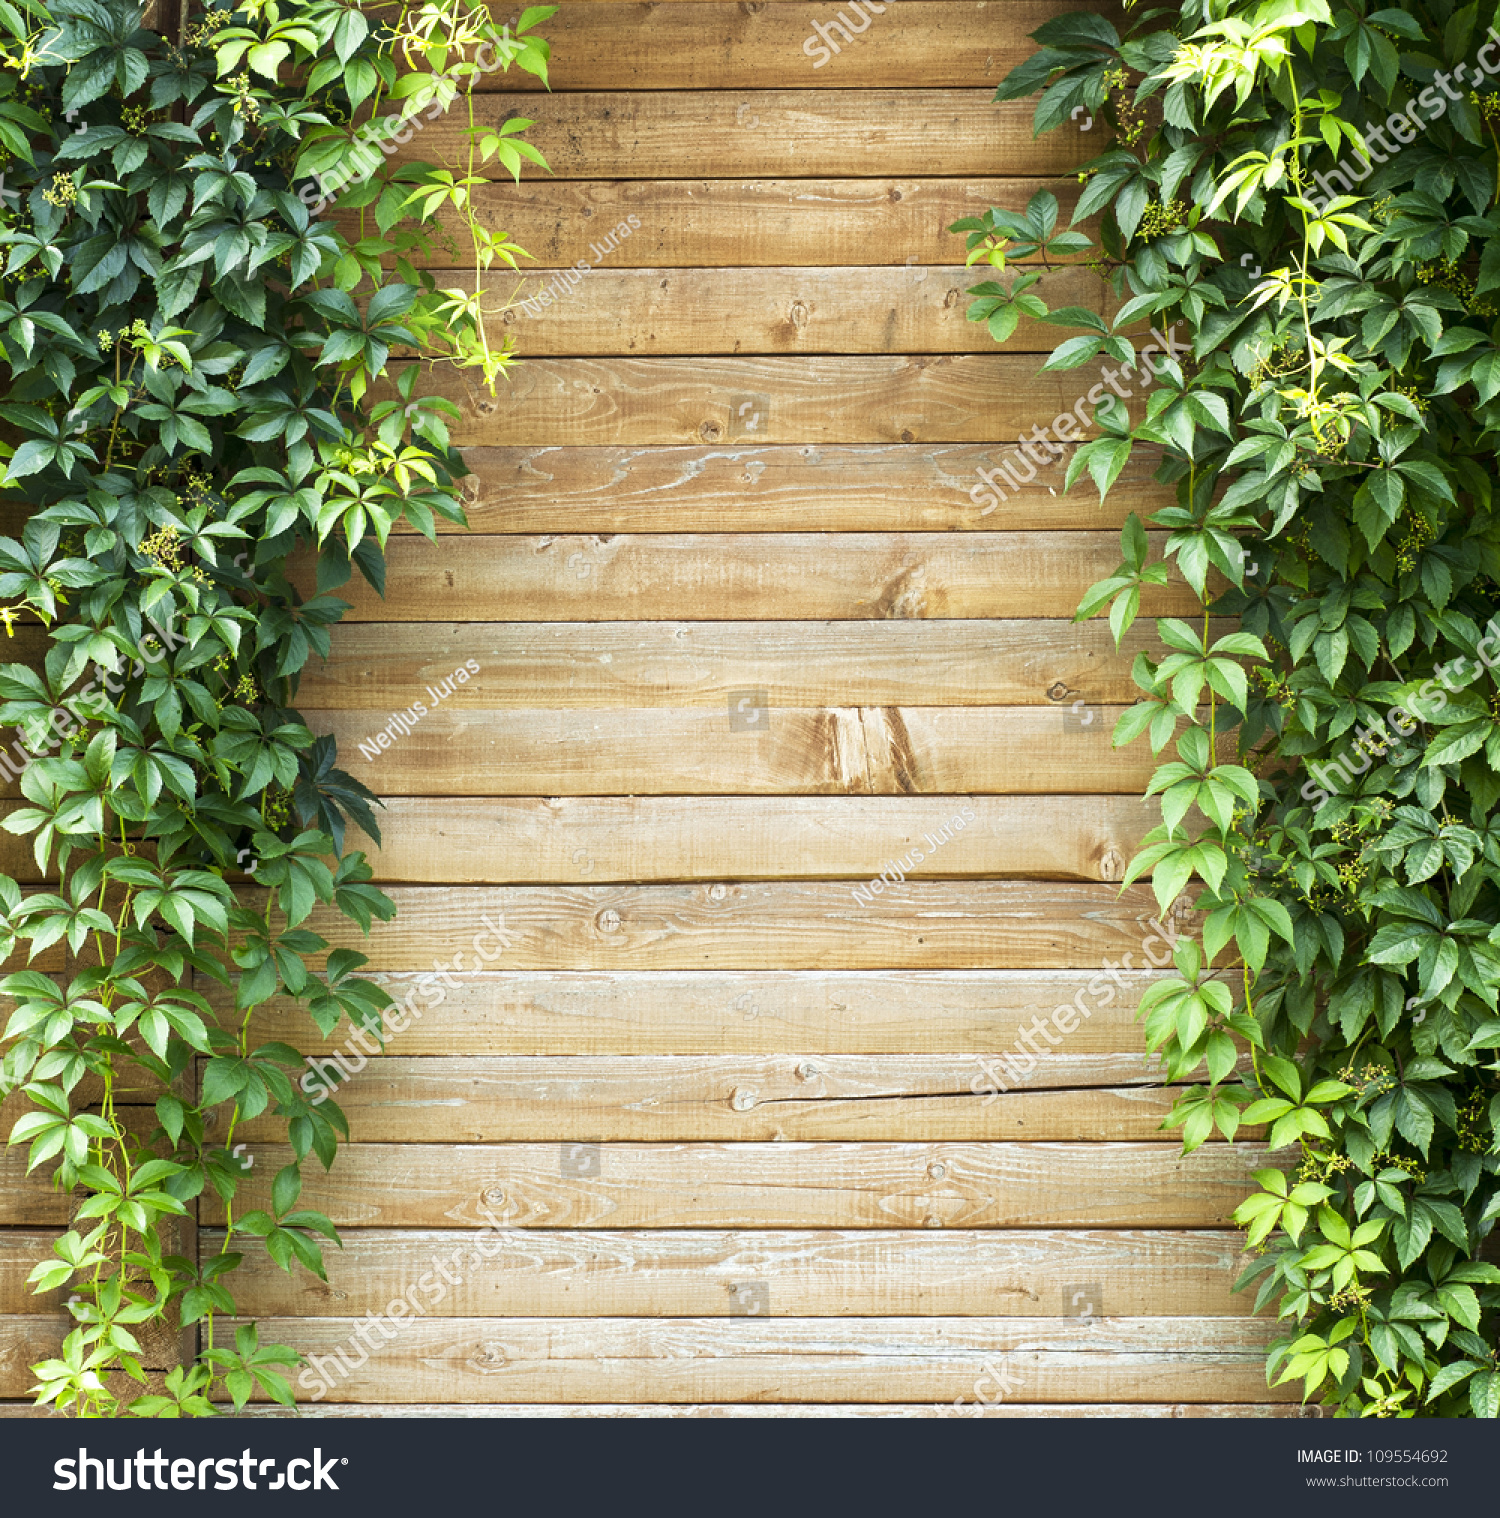 Green Creeper Plant Plank Wall Background Stock Photo (Royalty Free ...